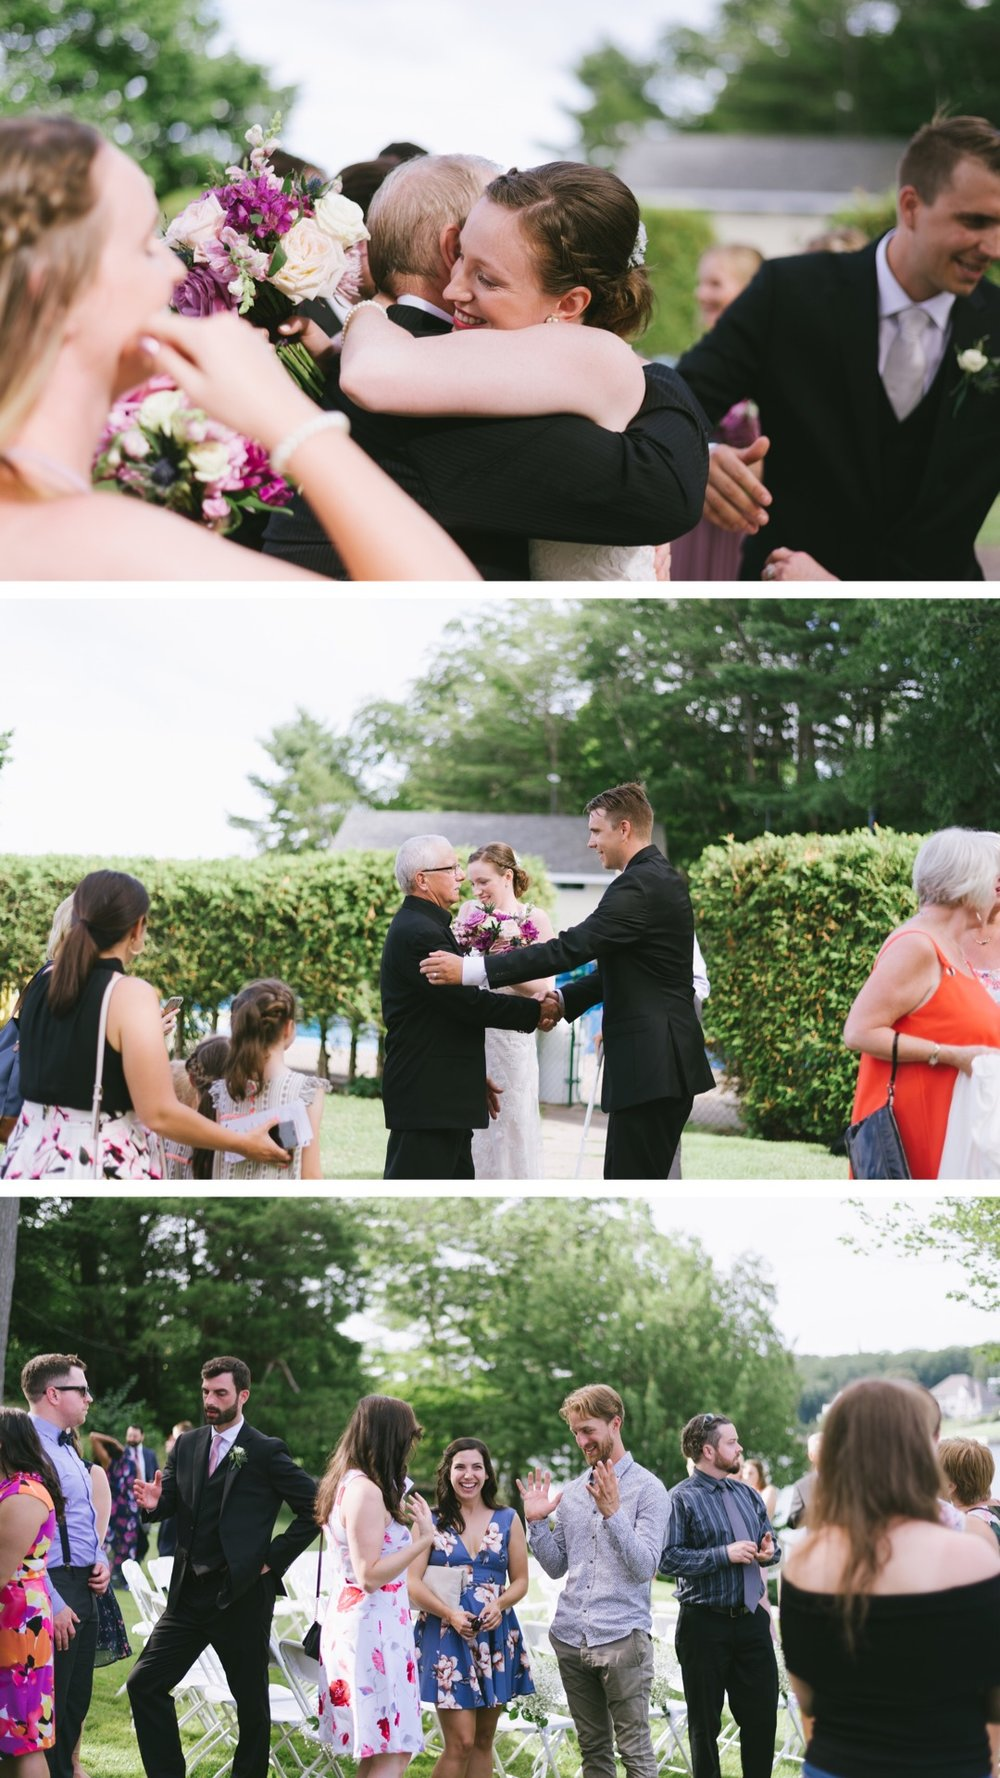 Martina & Scott Halifax Wedding Photographer - Sinead Dubeau Photography 16